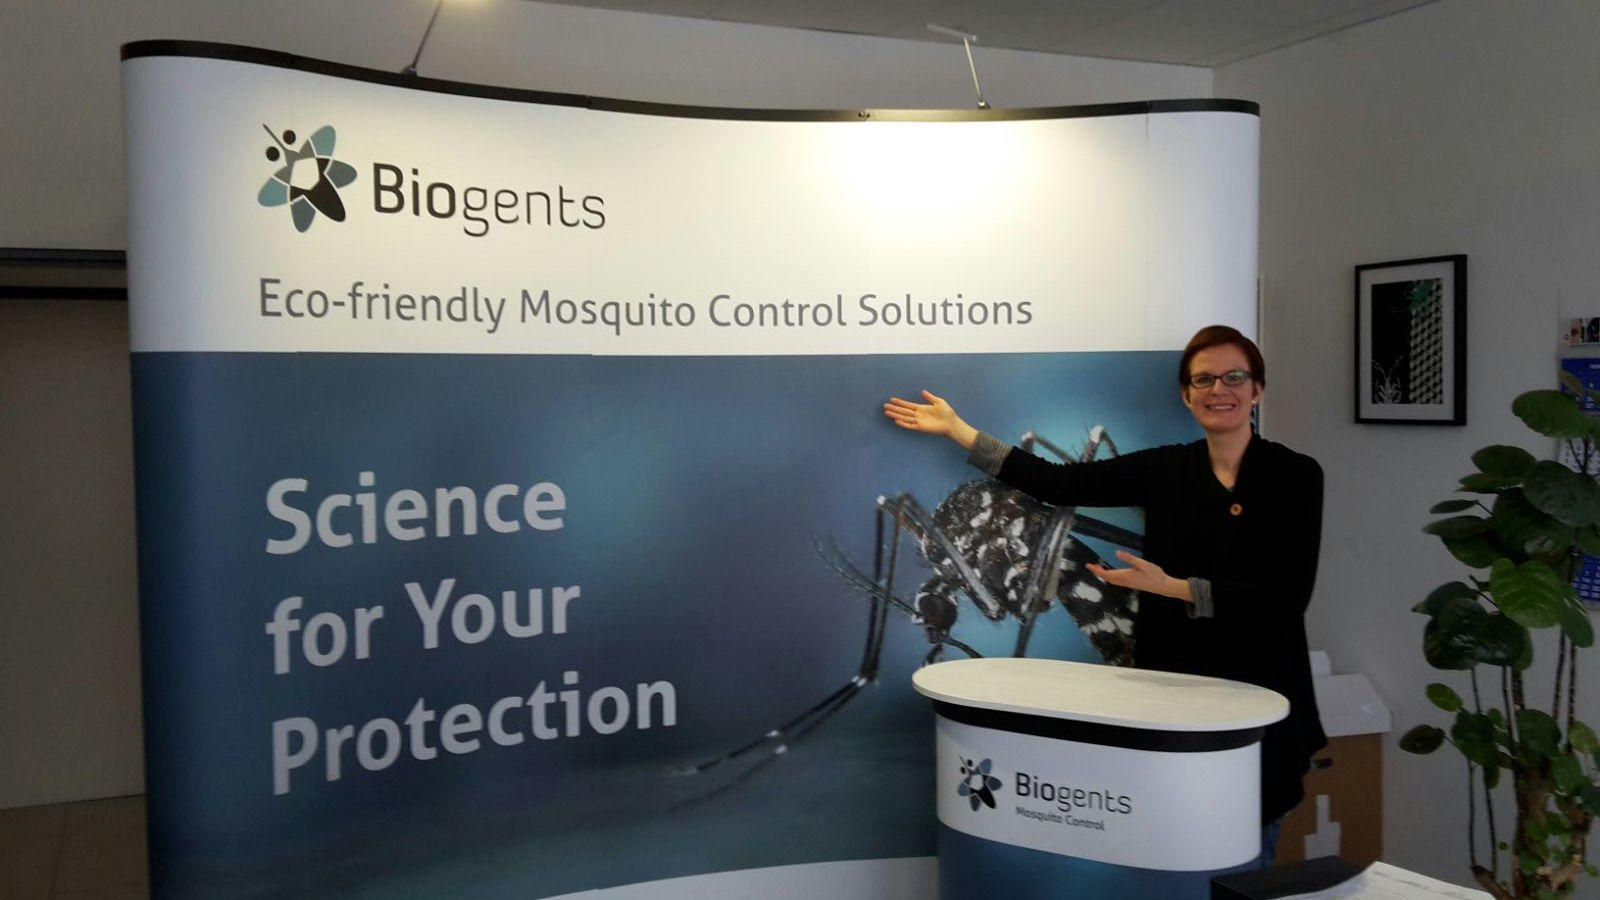 Biogents will attend the 83nd annual meeting of the American Mosquito Control Association in SanDiego, California, Feb. 2017